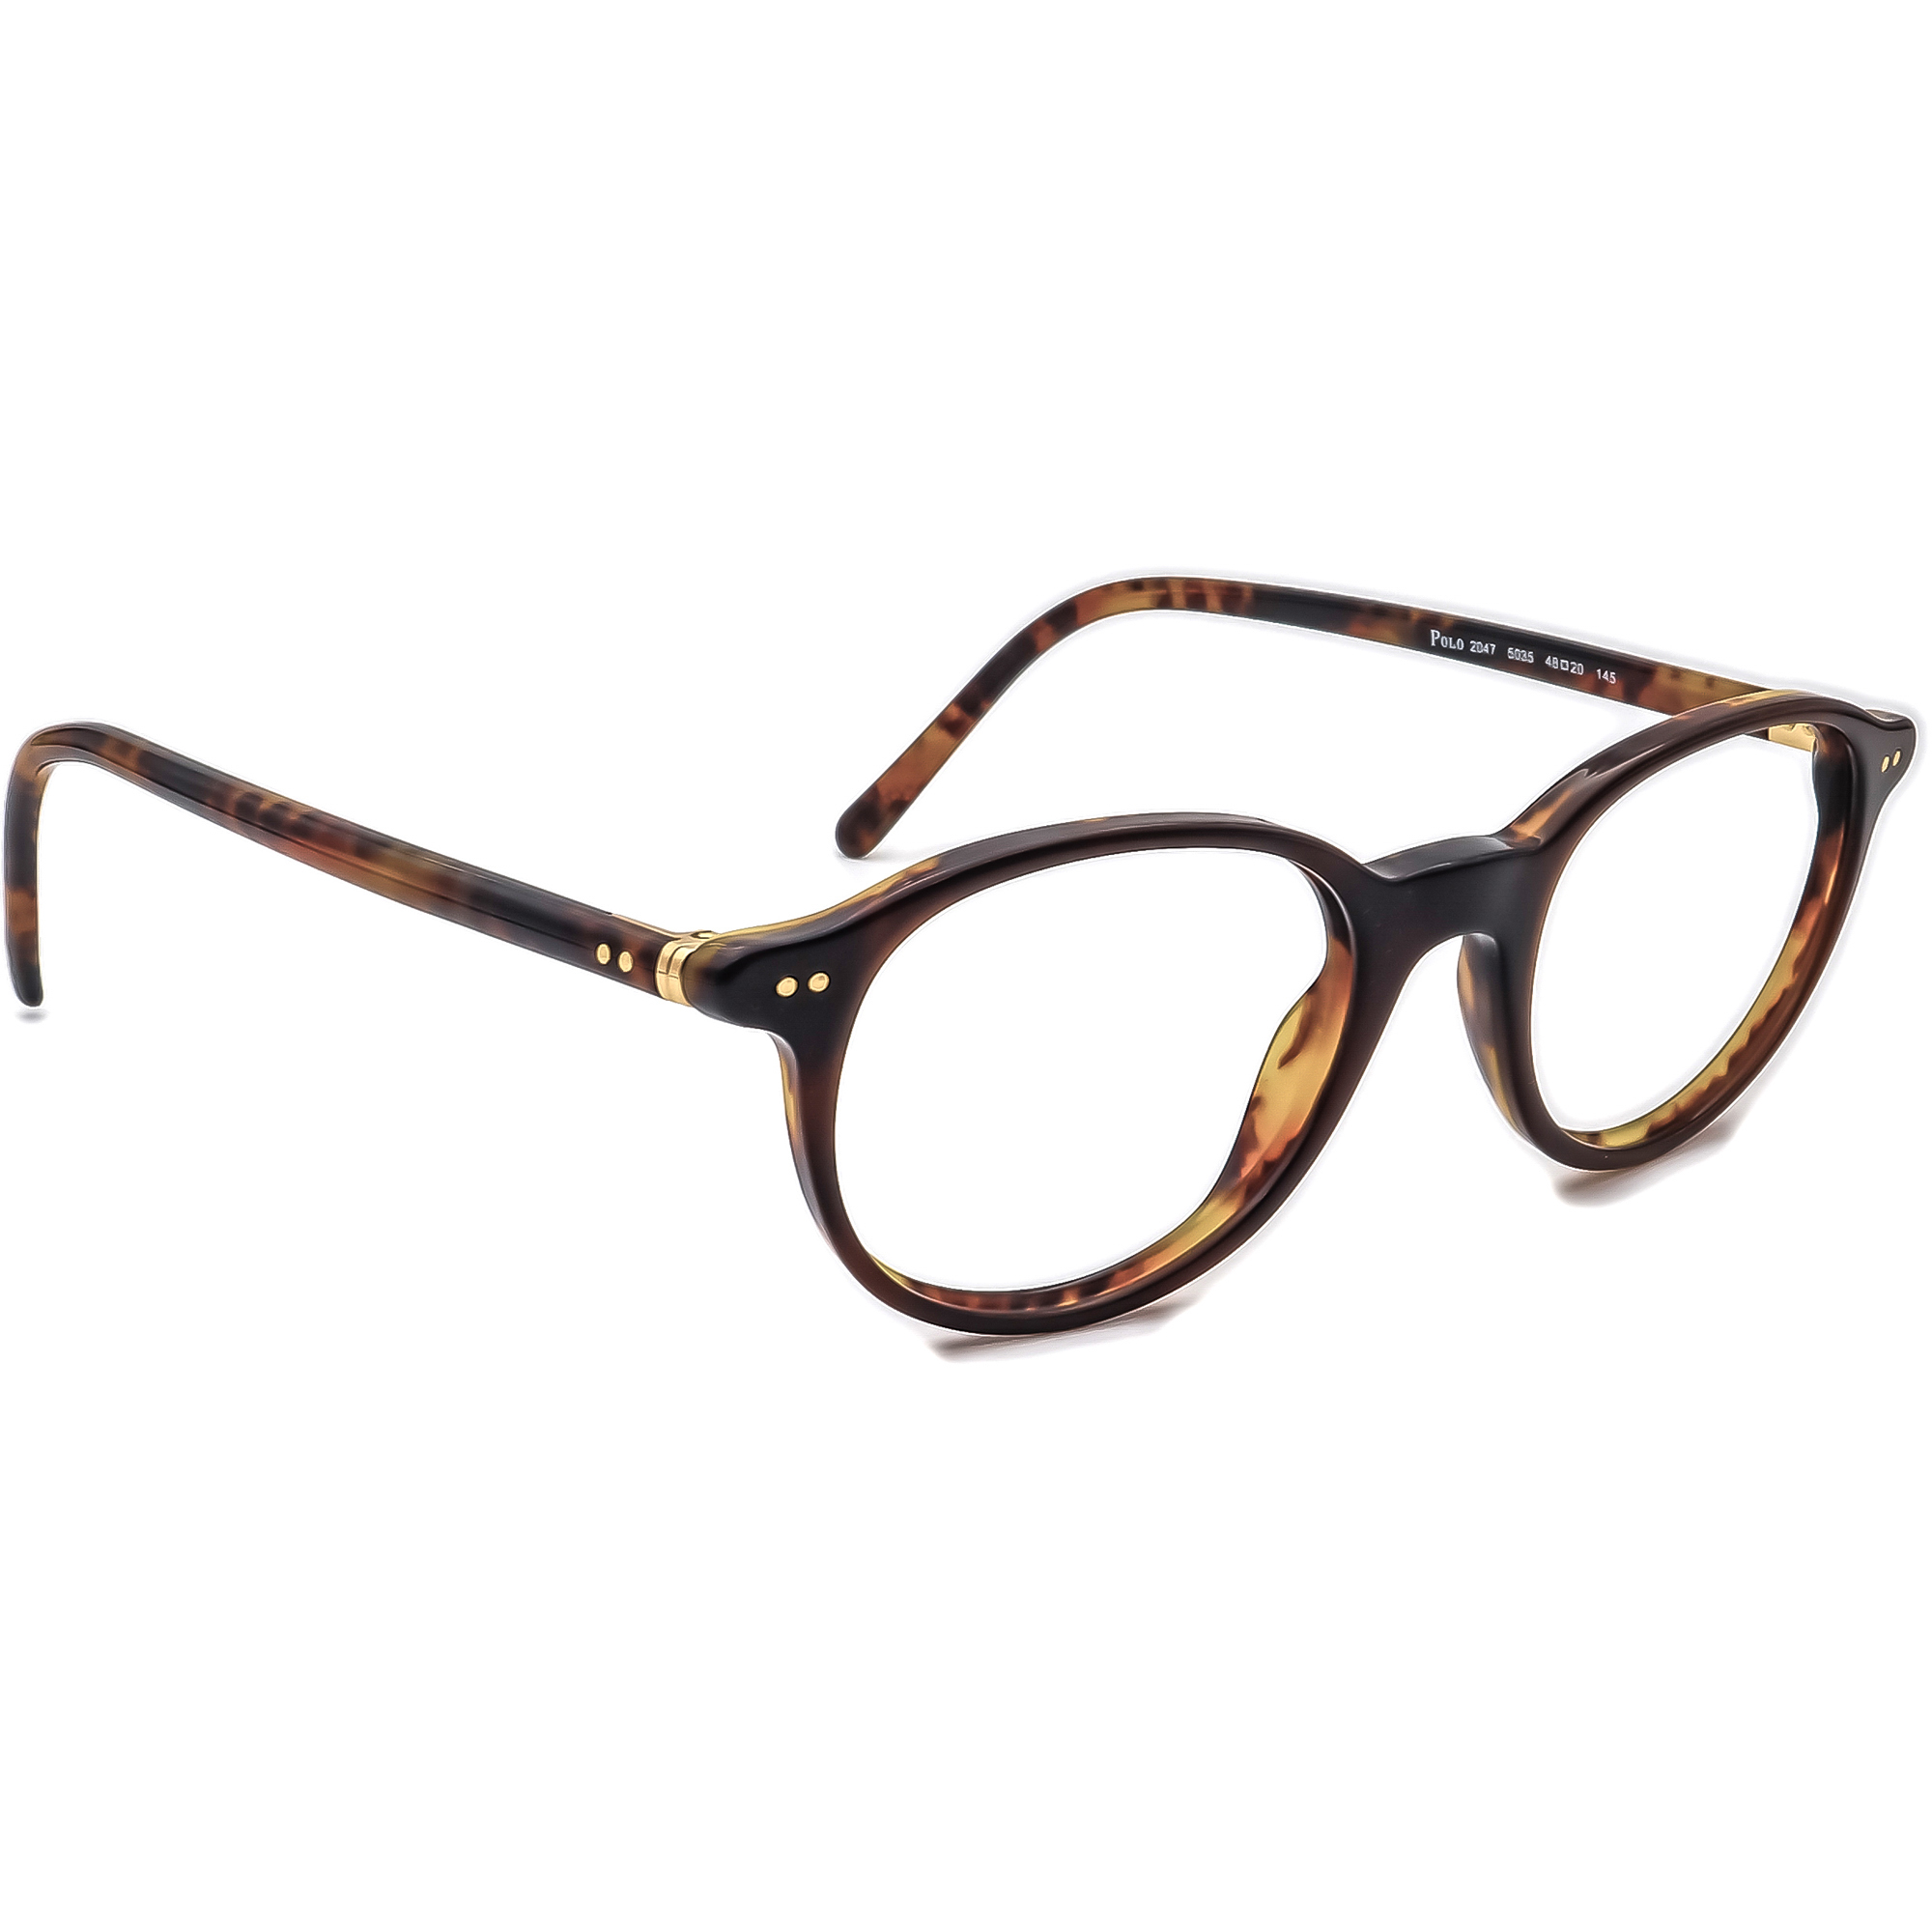 Ralph Lauren Polo 2047 5035 Eyeglasses